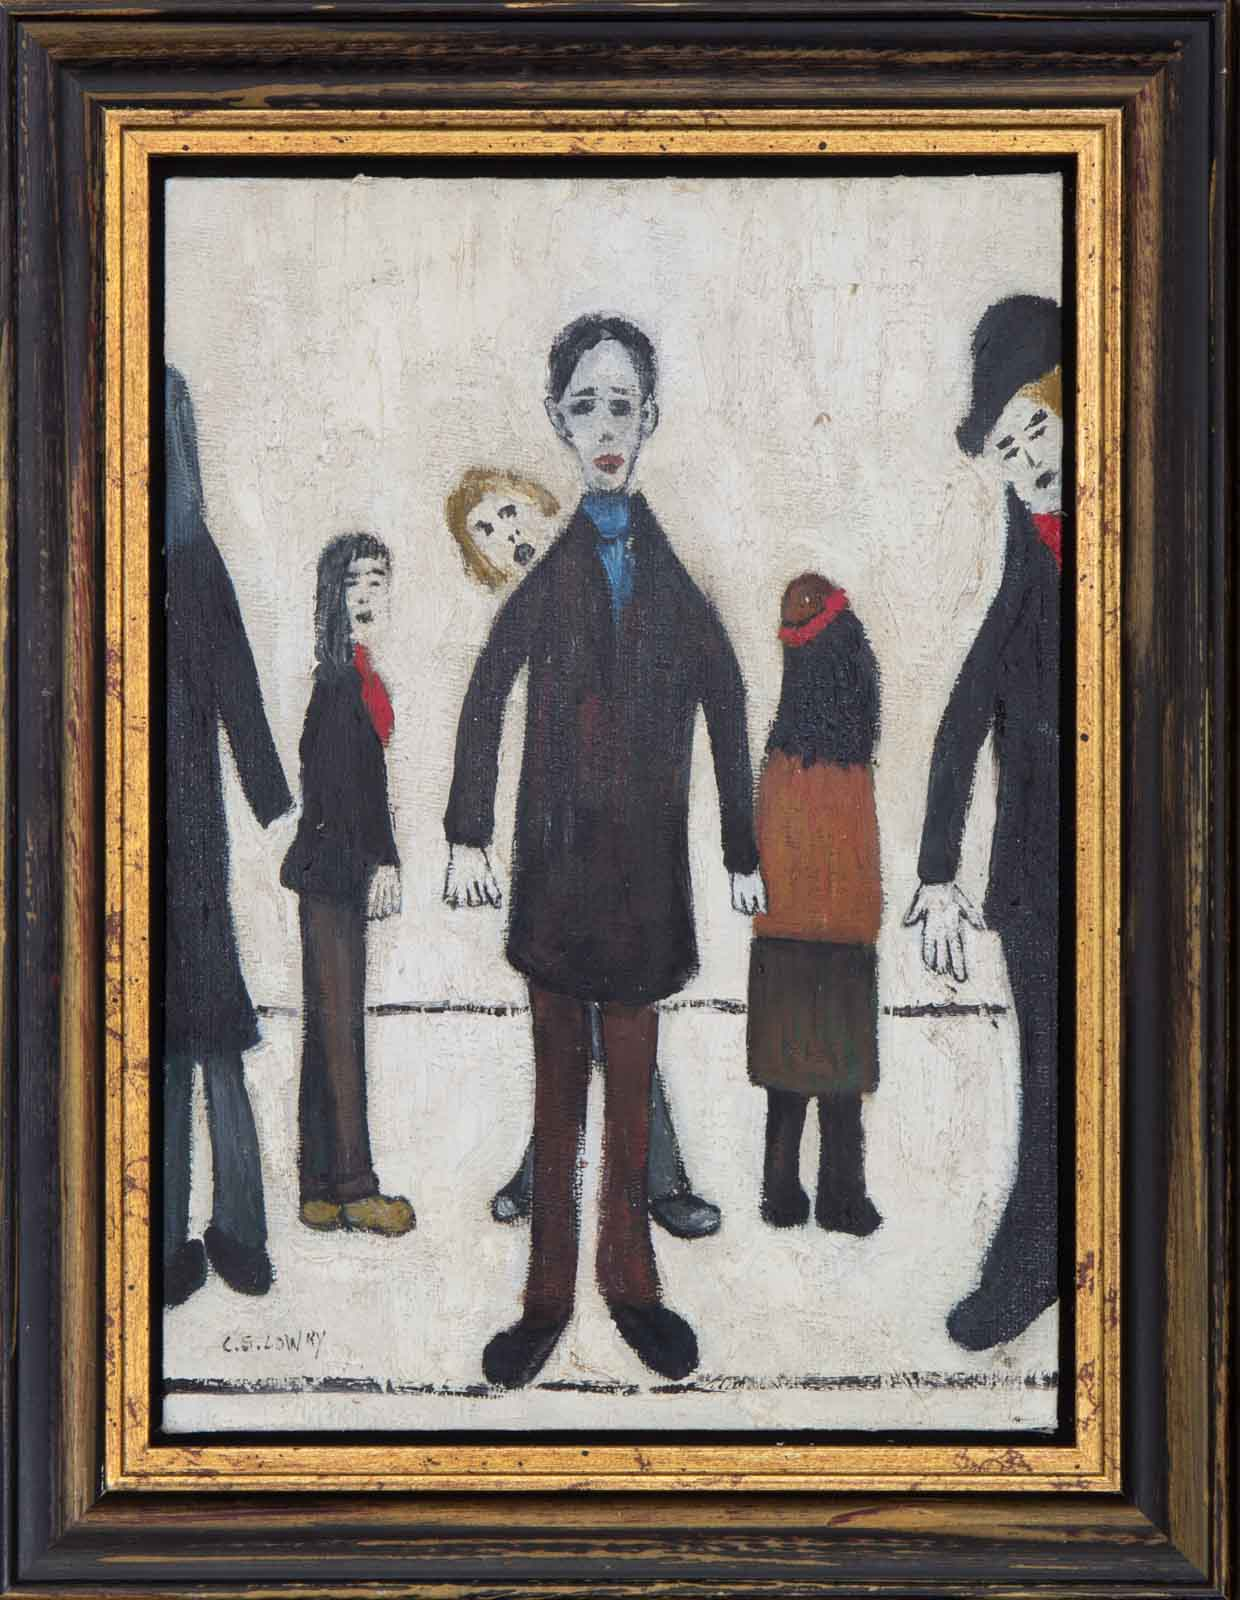 Crowd Scene after L.S Lowry